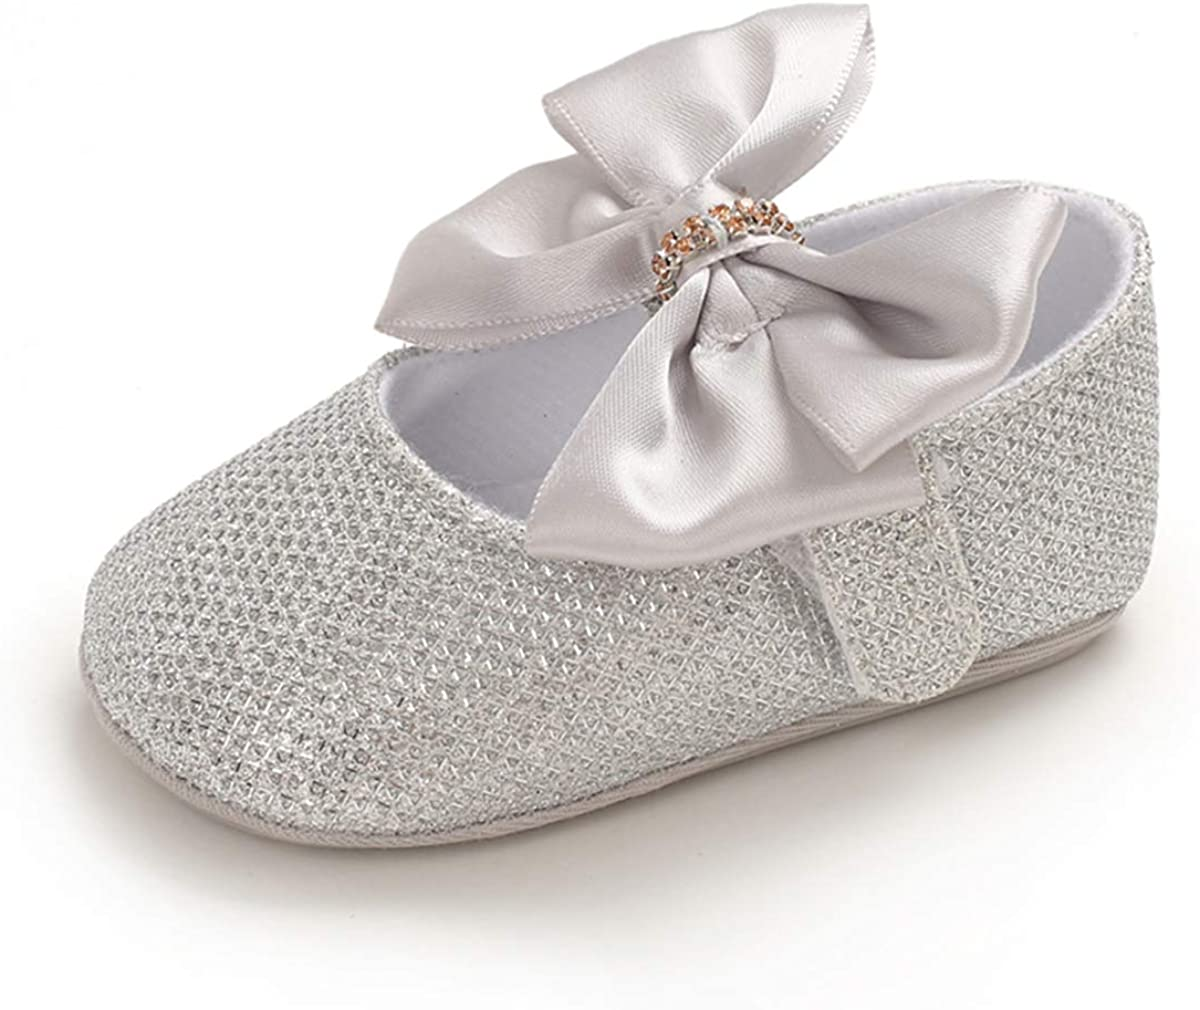   Baby Girls Mary Jane Flats Non-Slip Soft Rubber Sole Bowknot Princess Dress Crib Shoes for Toddler First Walkers   Mary Jane